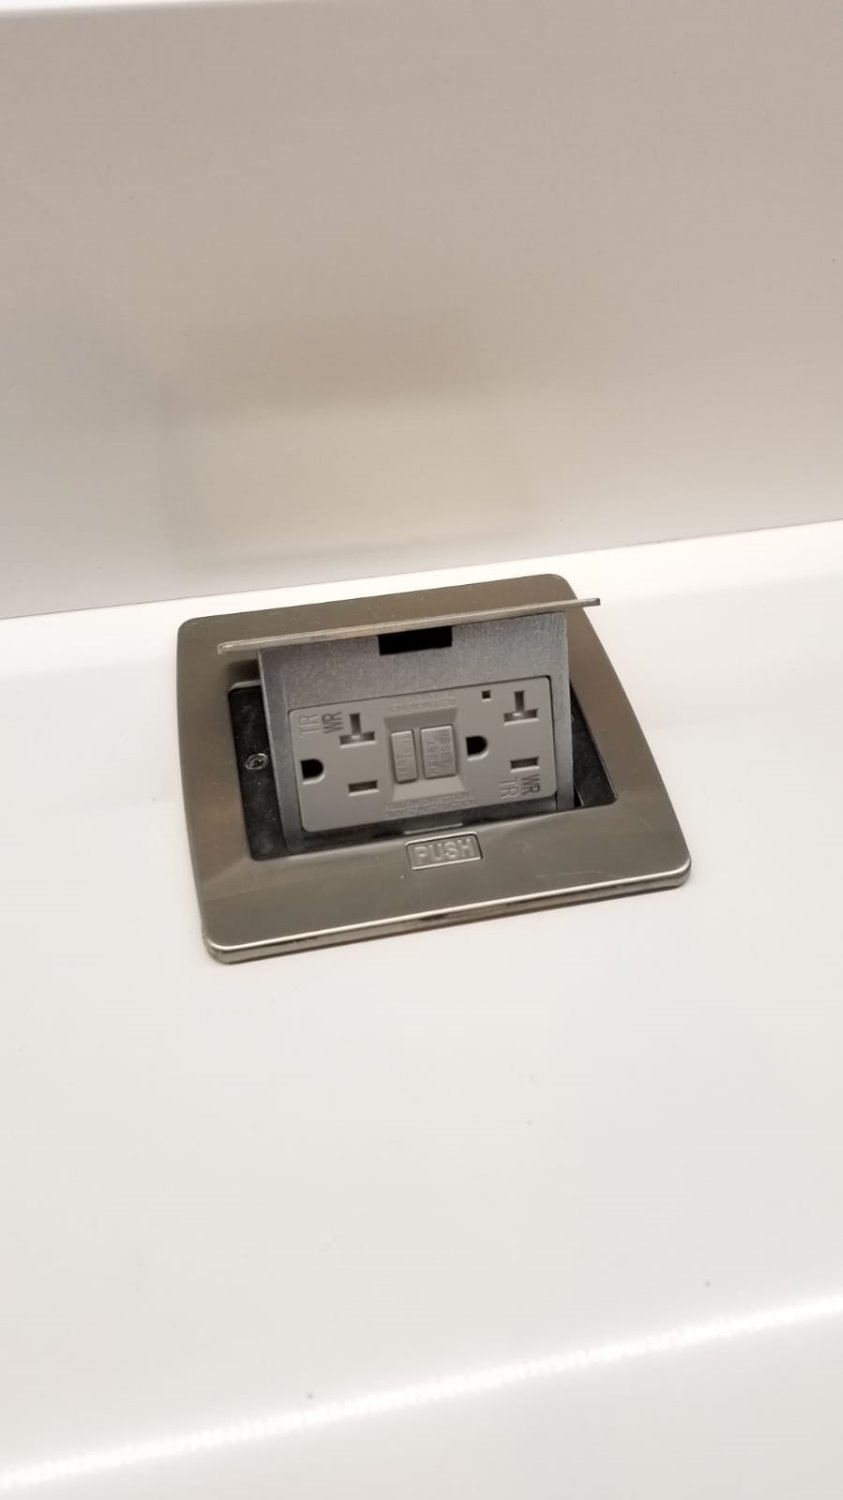 Lew Electric Pufp Ct Ss Kitchen Pop Up 20a Gfi Outlet Stainless How To Hook A Juan C Verified Customer Review Of Countertop Protected Power